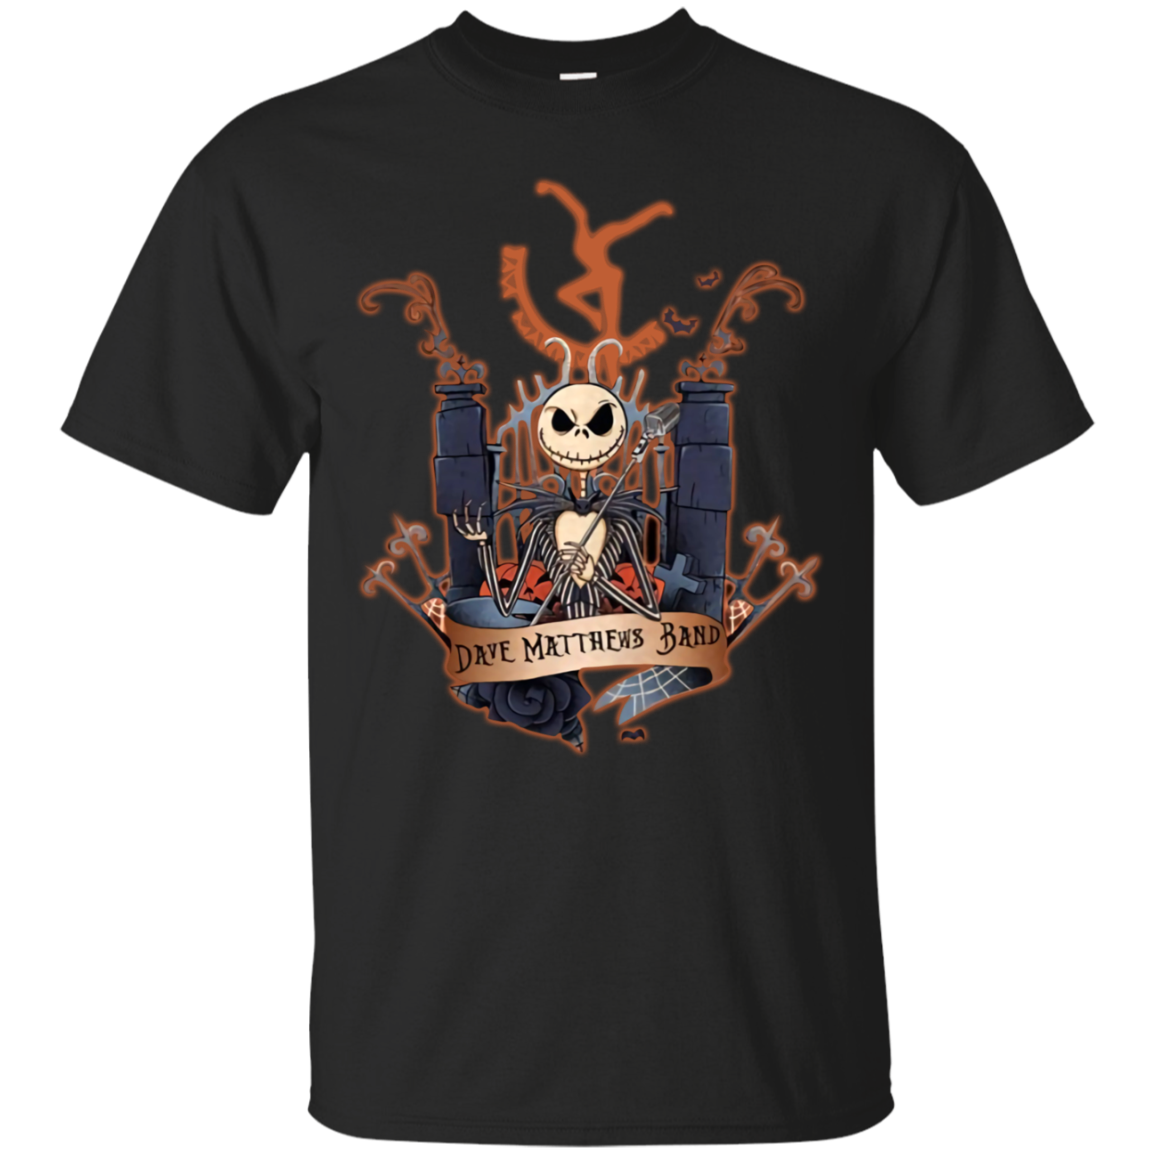 Dave_matthews_aw Jack Skellington Dave Matthews Band T-Shirt Black Cotton Men M-3XL Shirt